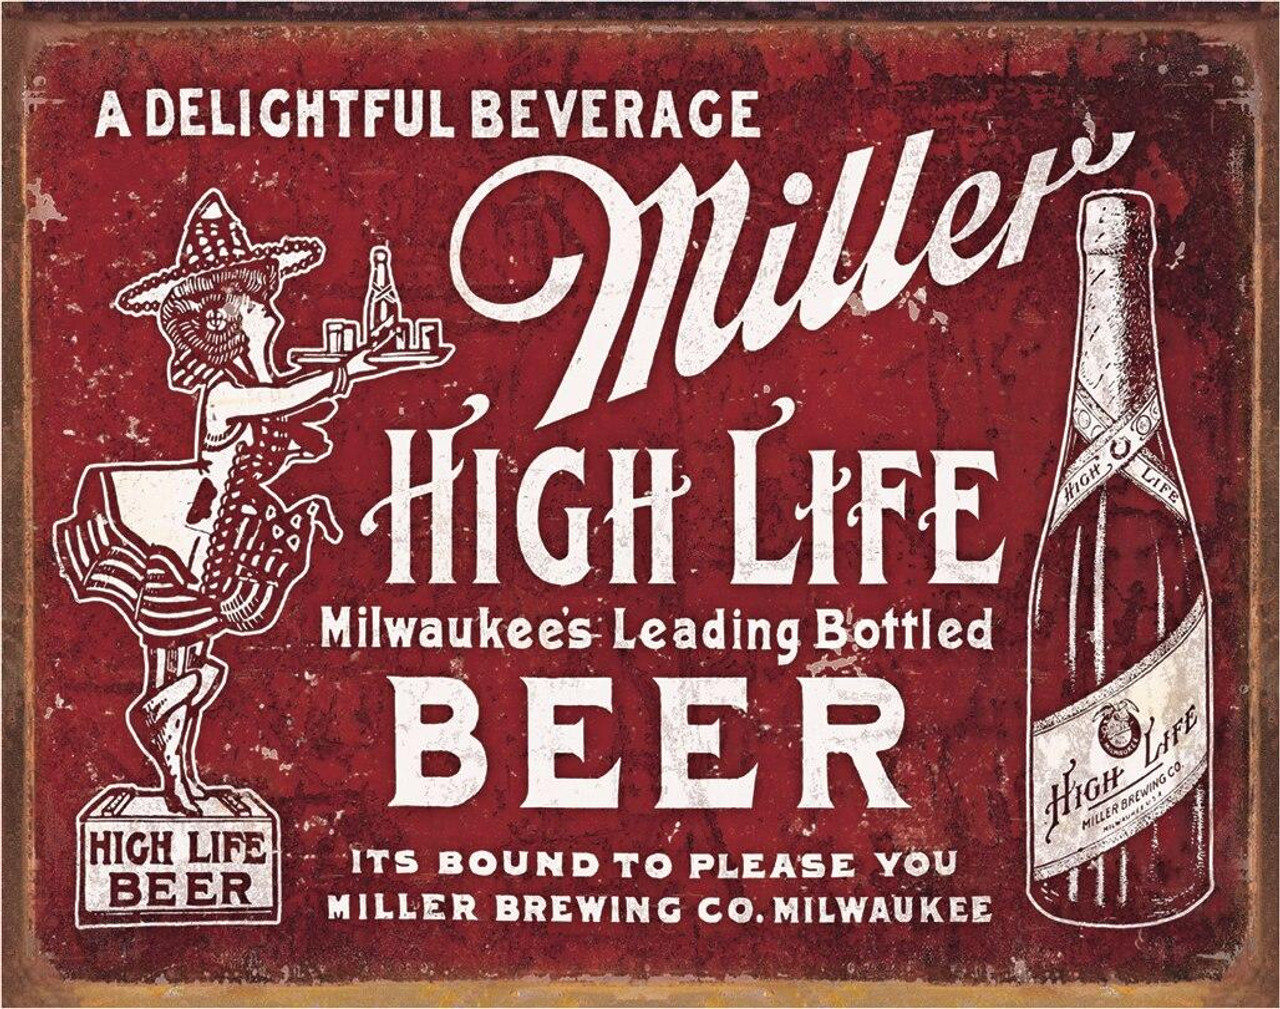 Molson Coors Miller - Bound to Please